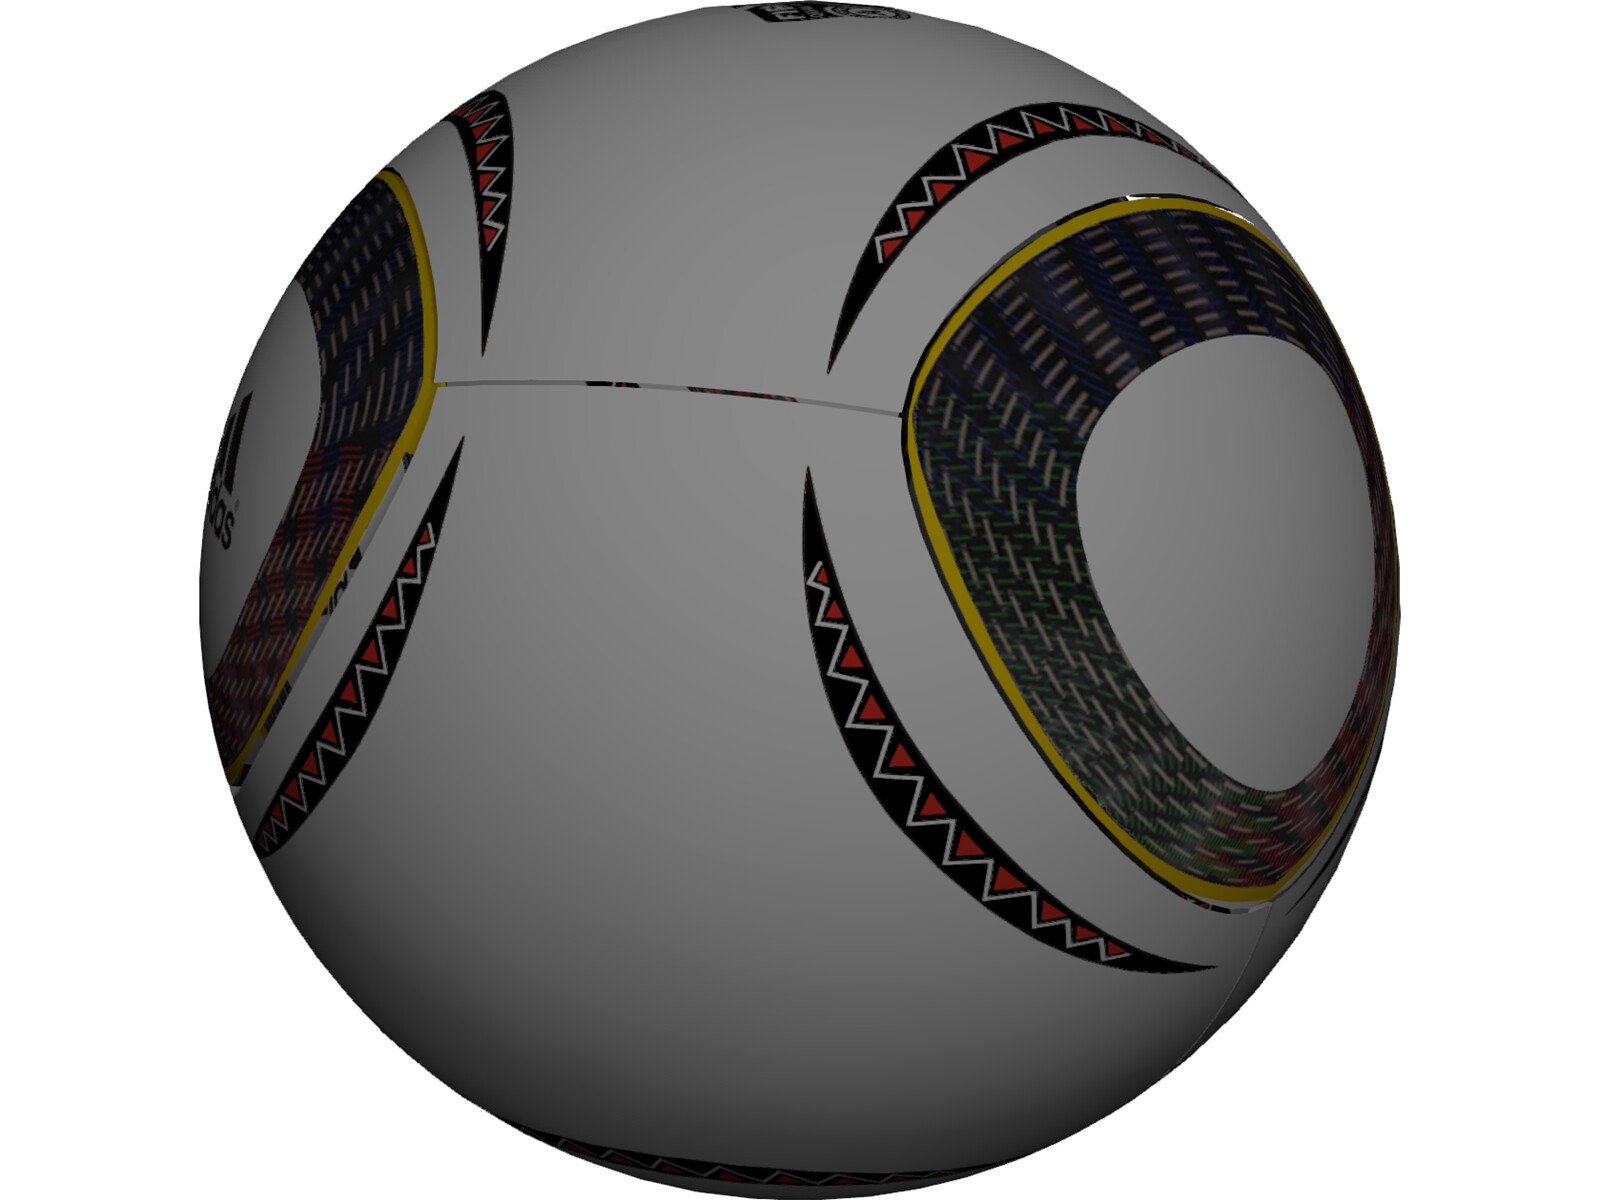 Soccer Ball Adidas Jabulani Official FIFA World Cup 2010